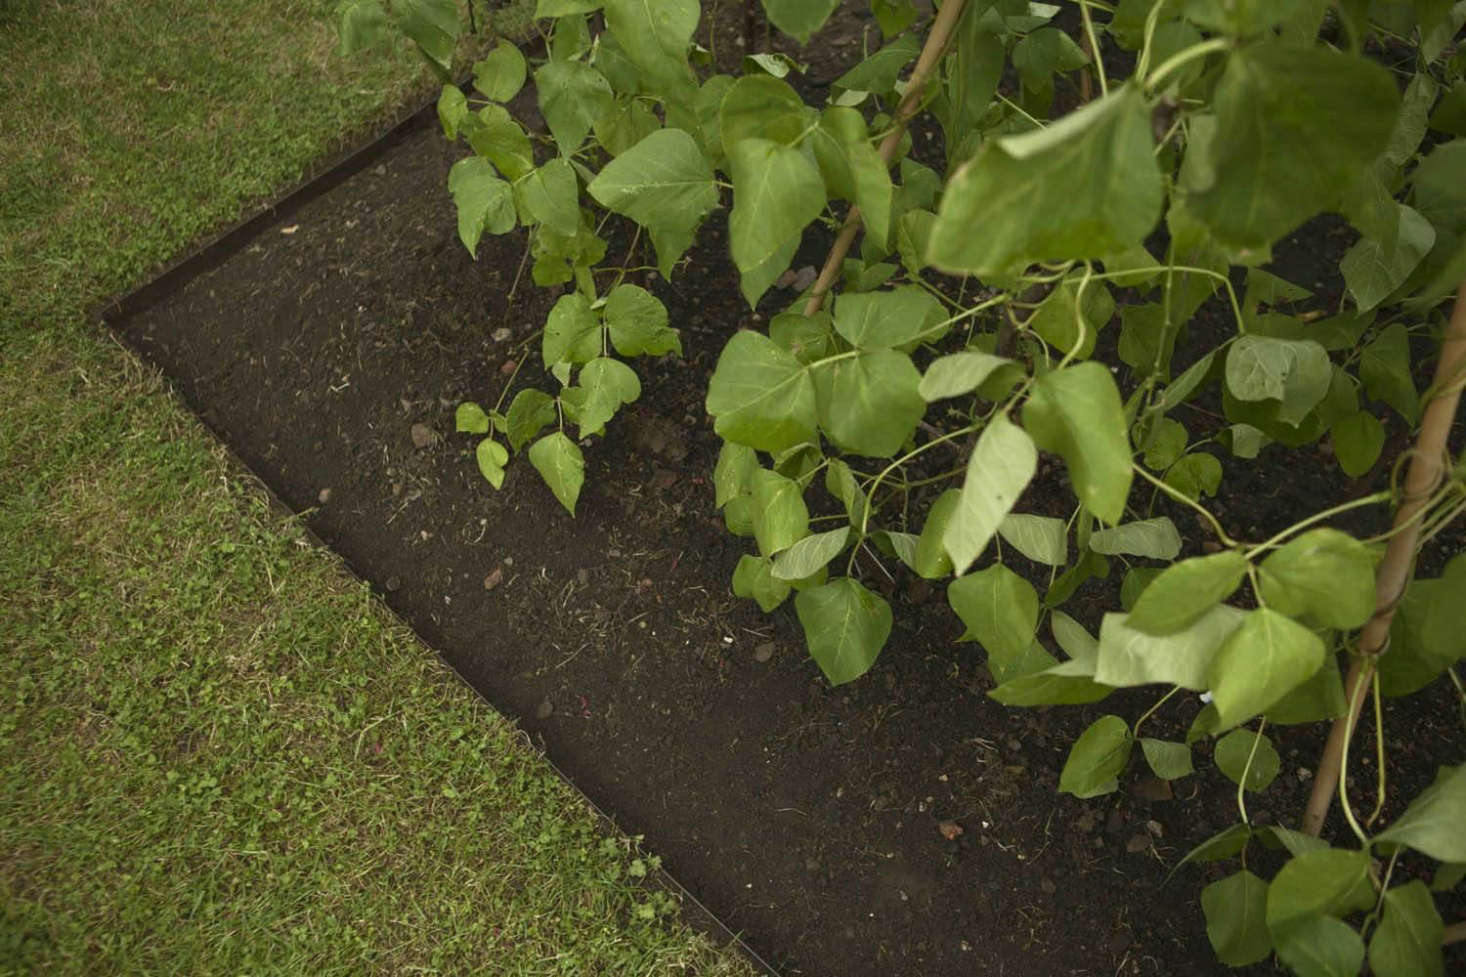 Metal landscape edging stops the creeping tendency of some weeds.